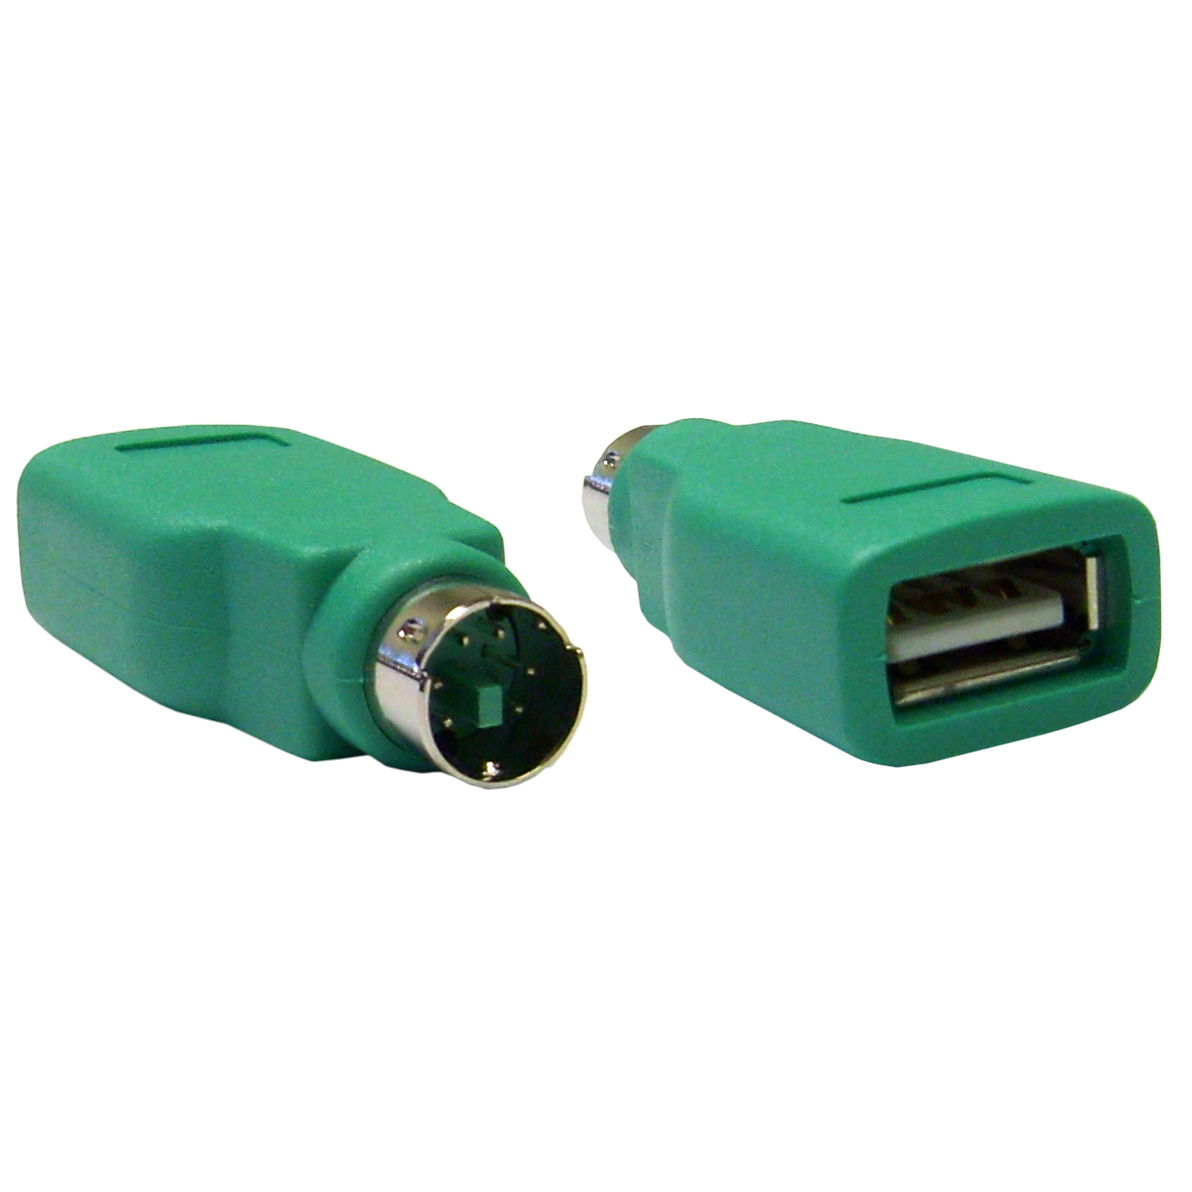 hight resolution of male usb to ps 2 wiring diagram wiring diagram centre ps2 usb adapter wiring diagram